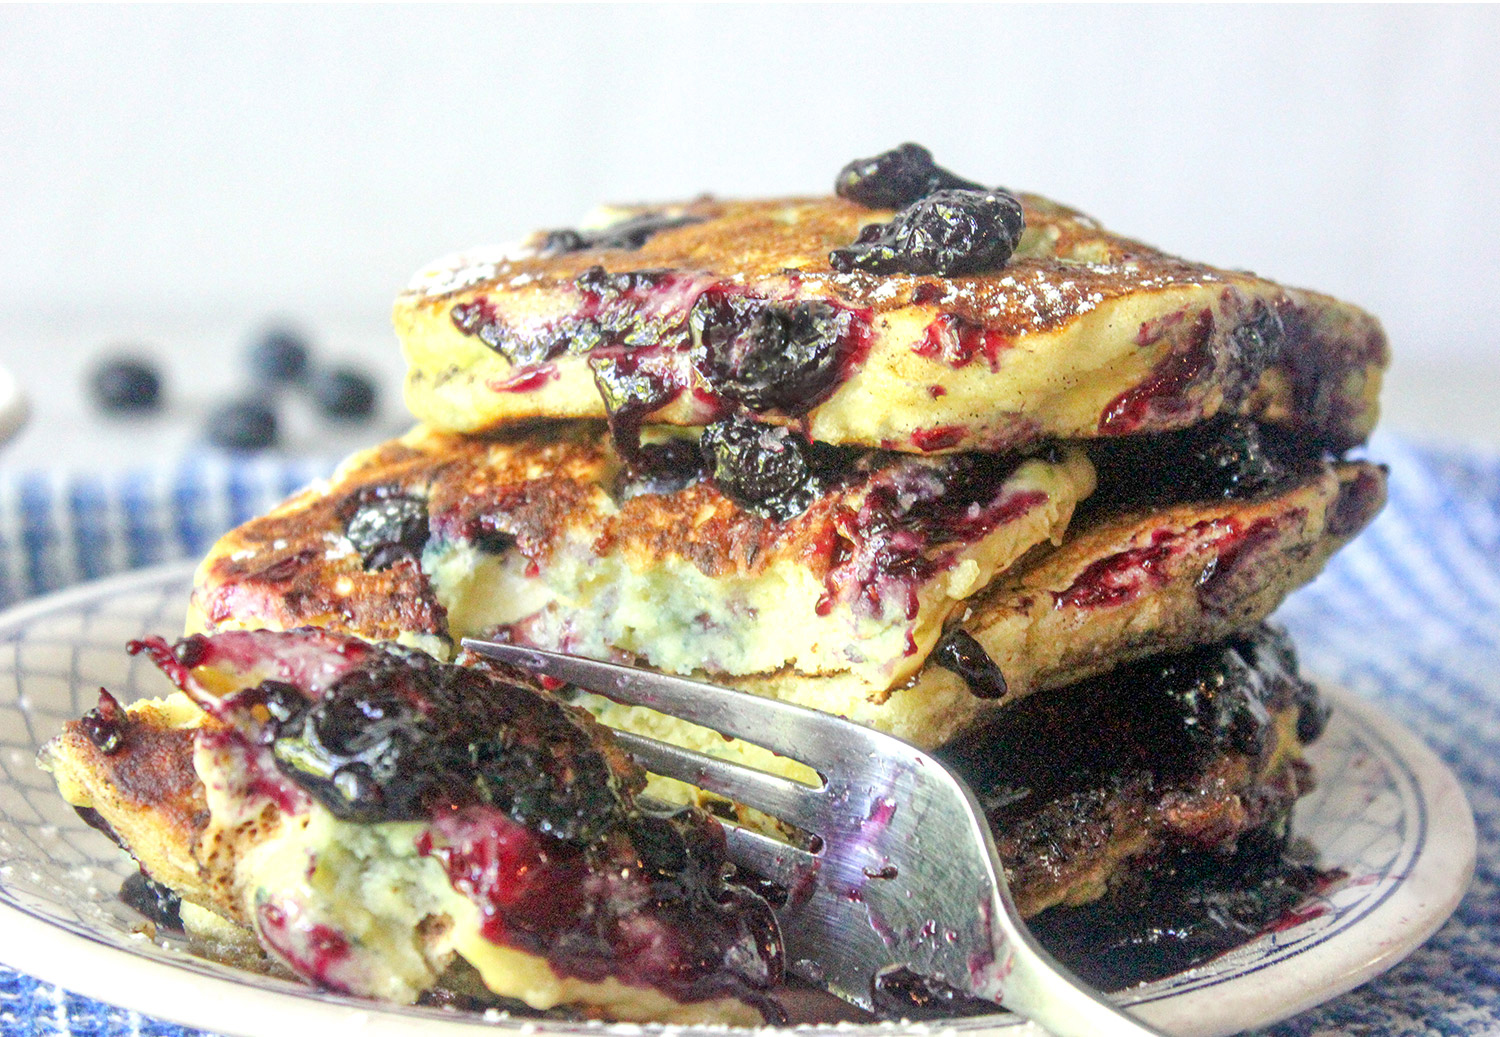 Stack of blueberry pancakes with a fork cutting through to show how fluffy they are.